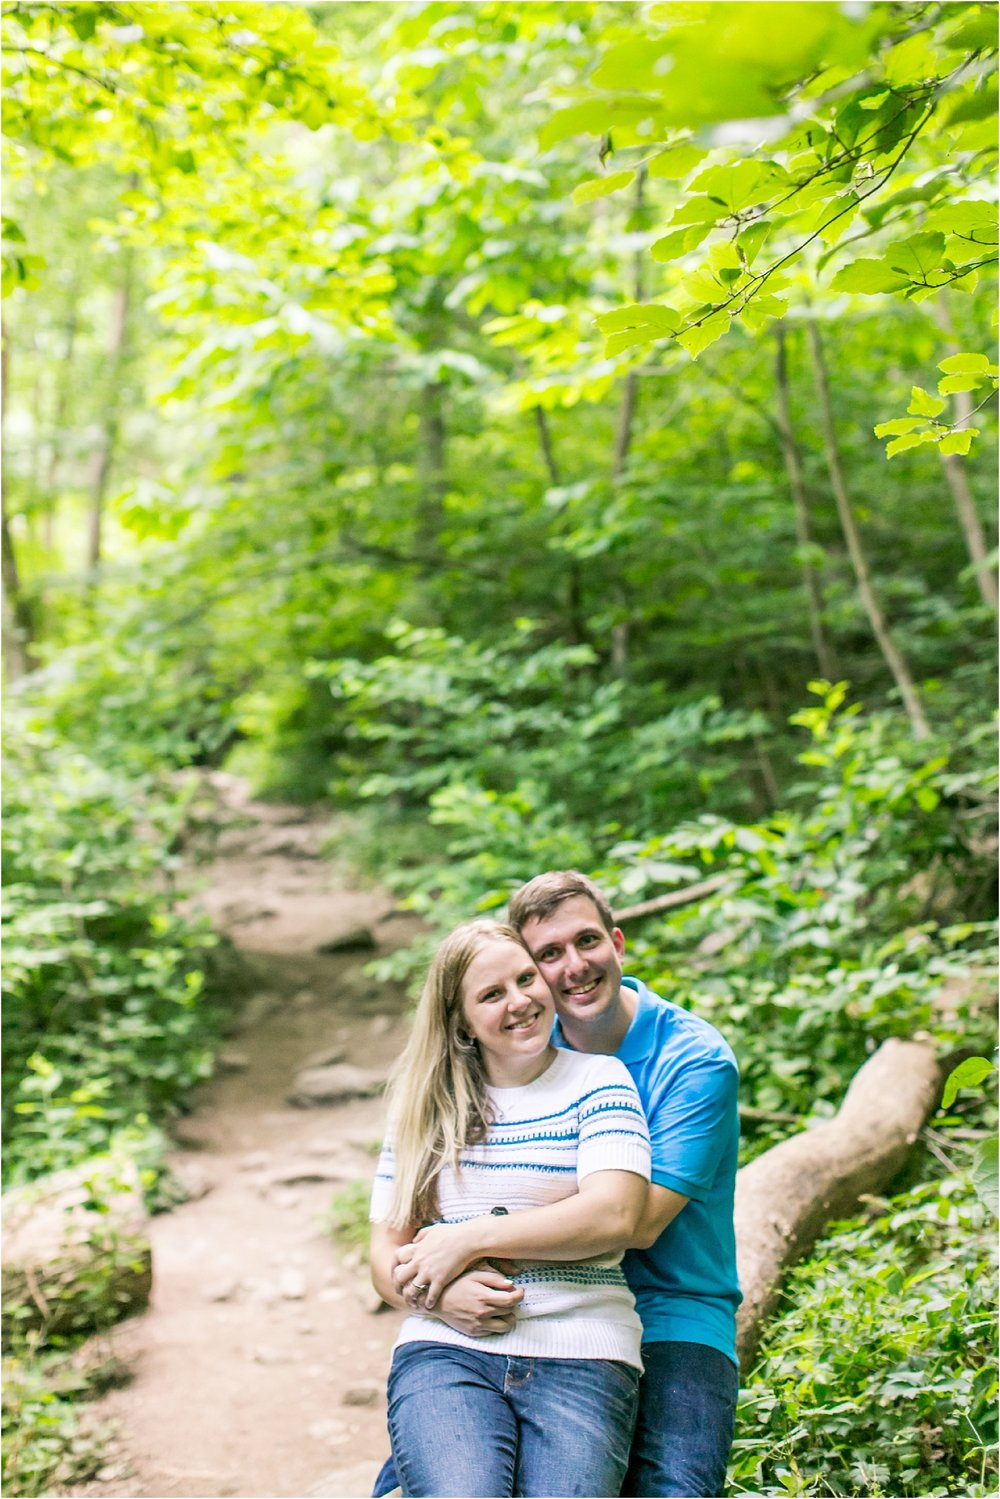 kimmie shawn patapsco state park engagement living radiant photography photos_0020.jpg